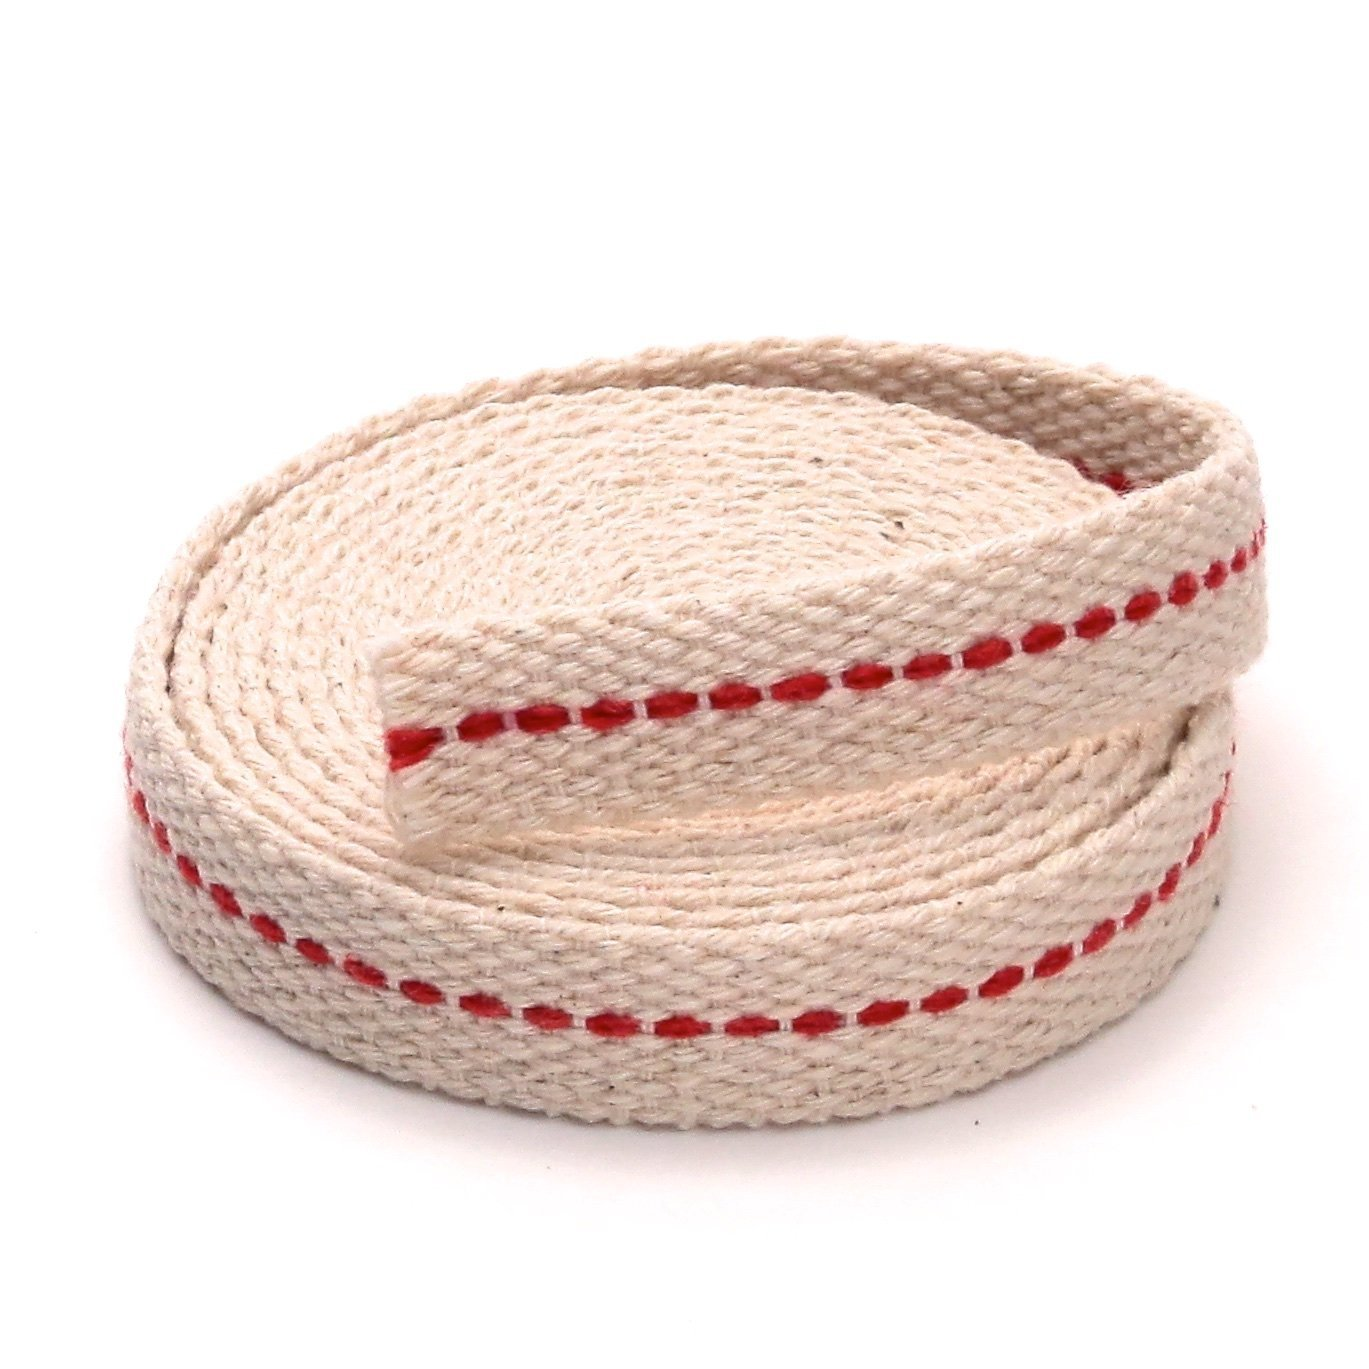 """1/2"""" 100% Cotton Flat Wick 6 Foot Roll for Paraffin Oil or Kerosene based Lanterns and Oil Lamps with Genuine Red Stitch Superior Quality (1/2"""")"""